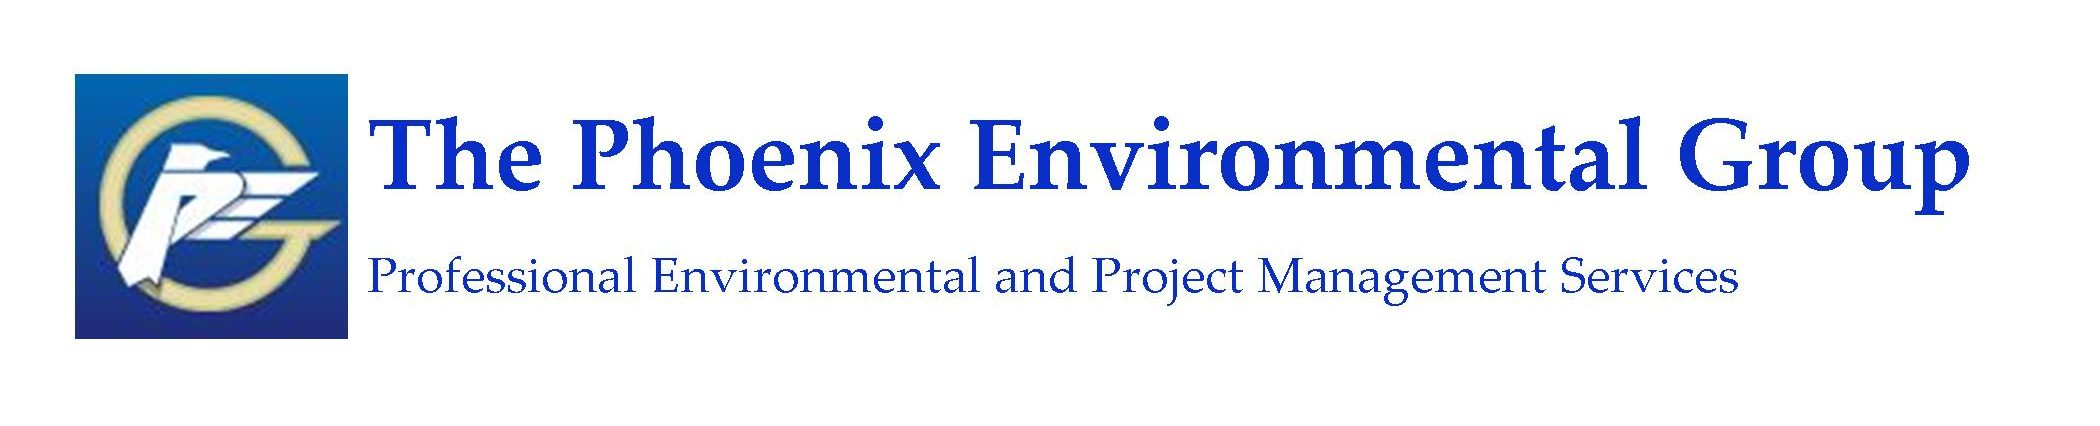 The Phoenix Environmental Group